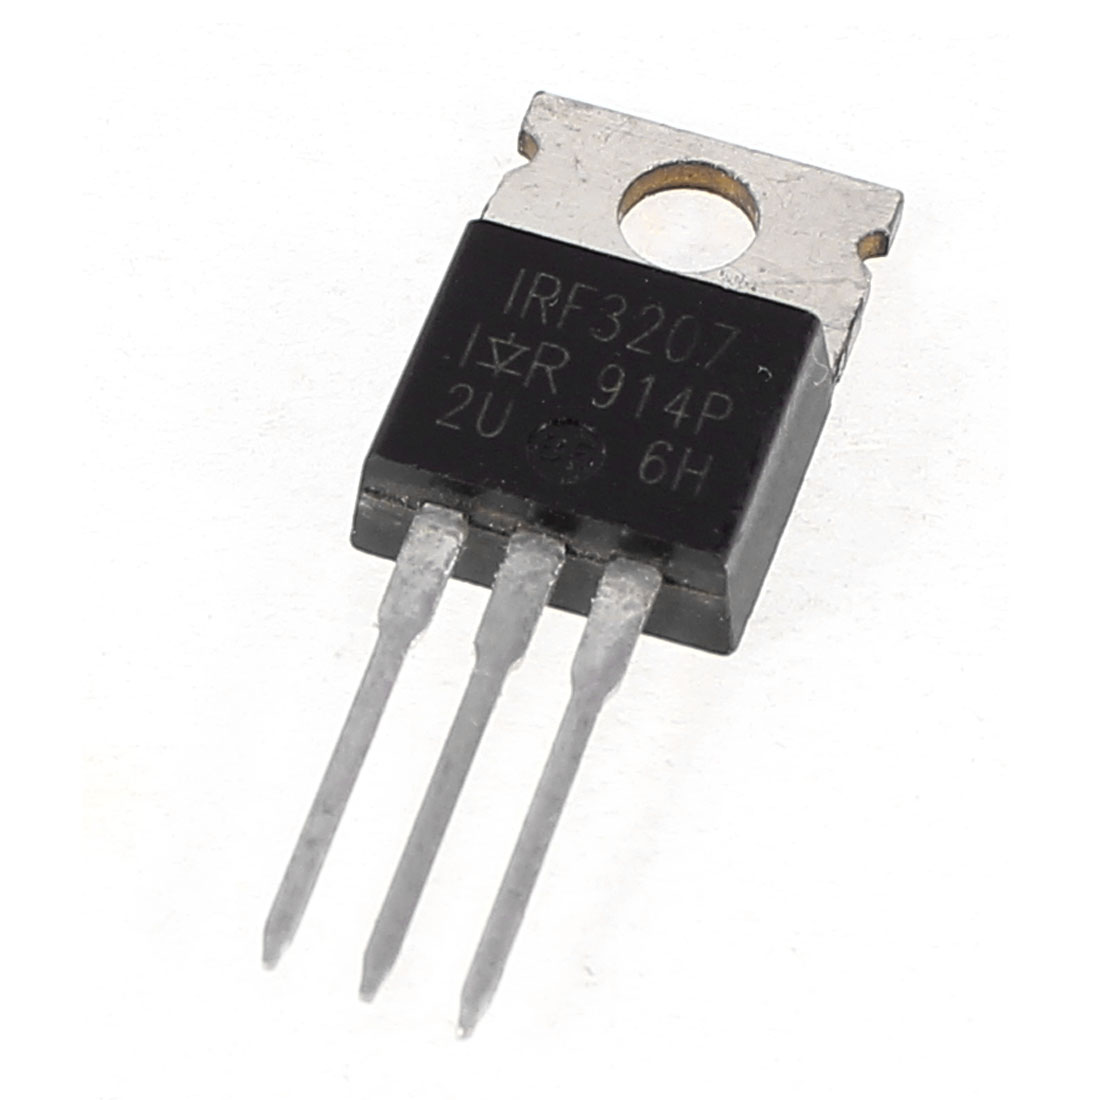 IRF3207 Fast Switching Speed Semiconductor NPN Power Transistor 75V 180A